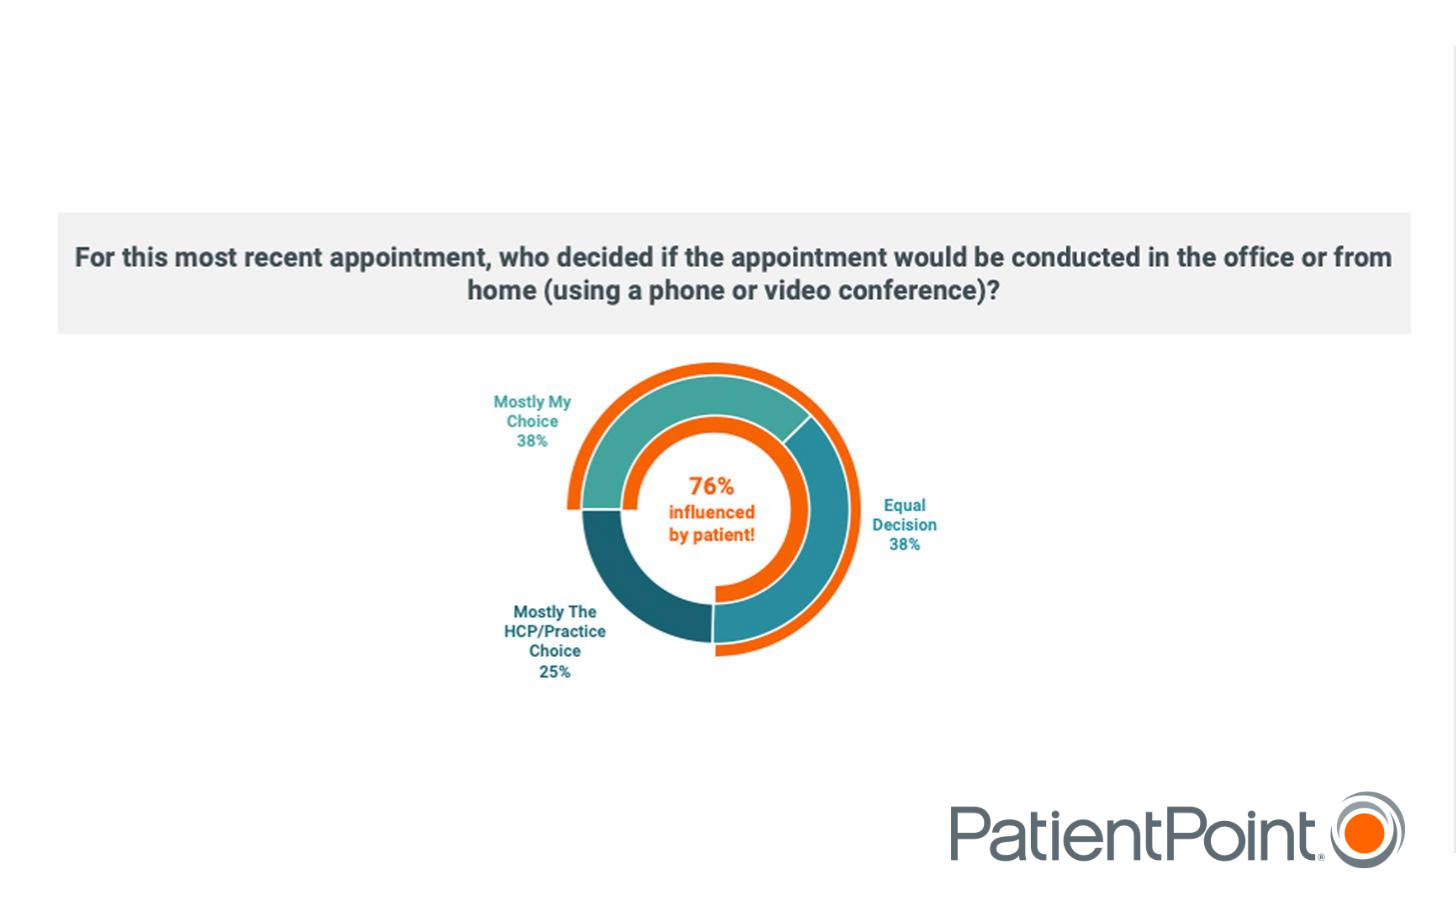 A graph depicting patient responses to a survey question showing that patients are largely in control over their appointments.